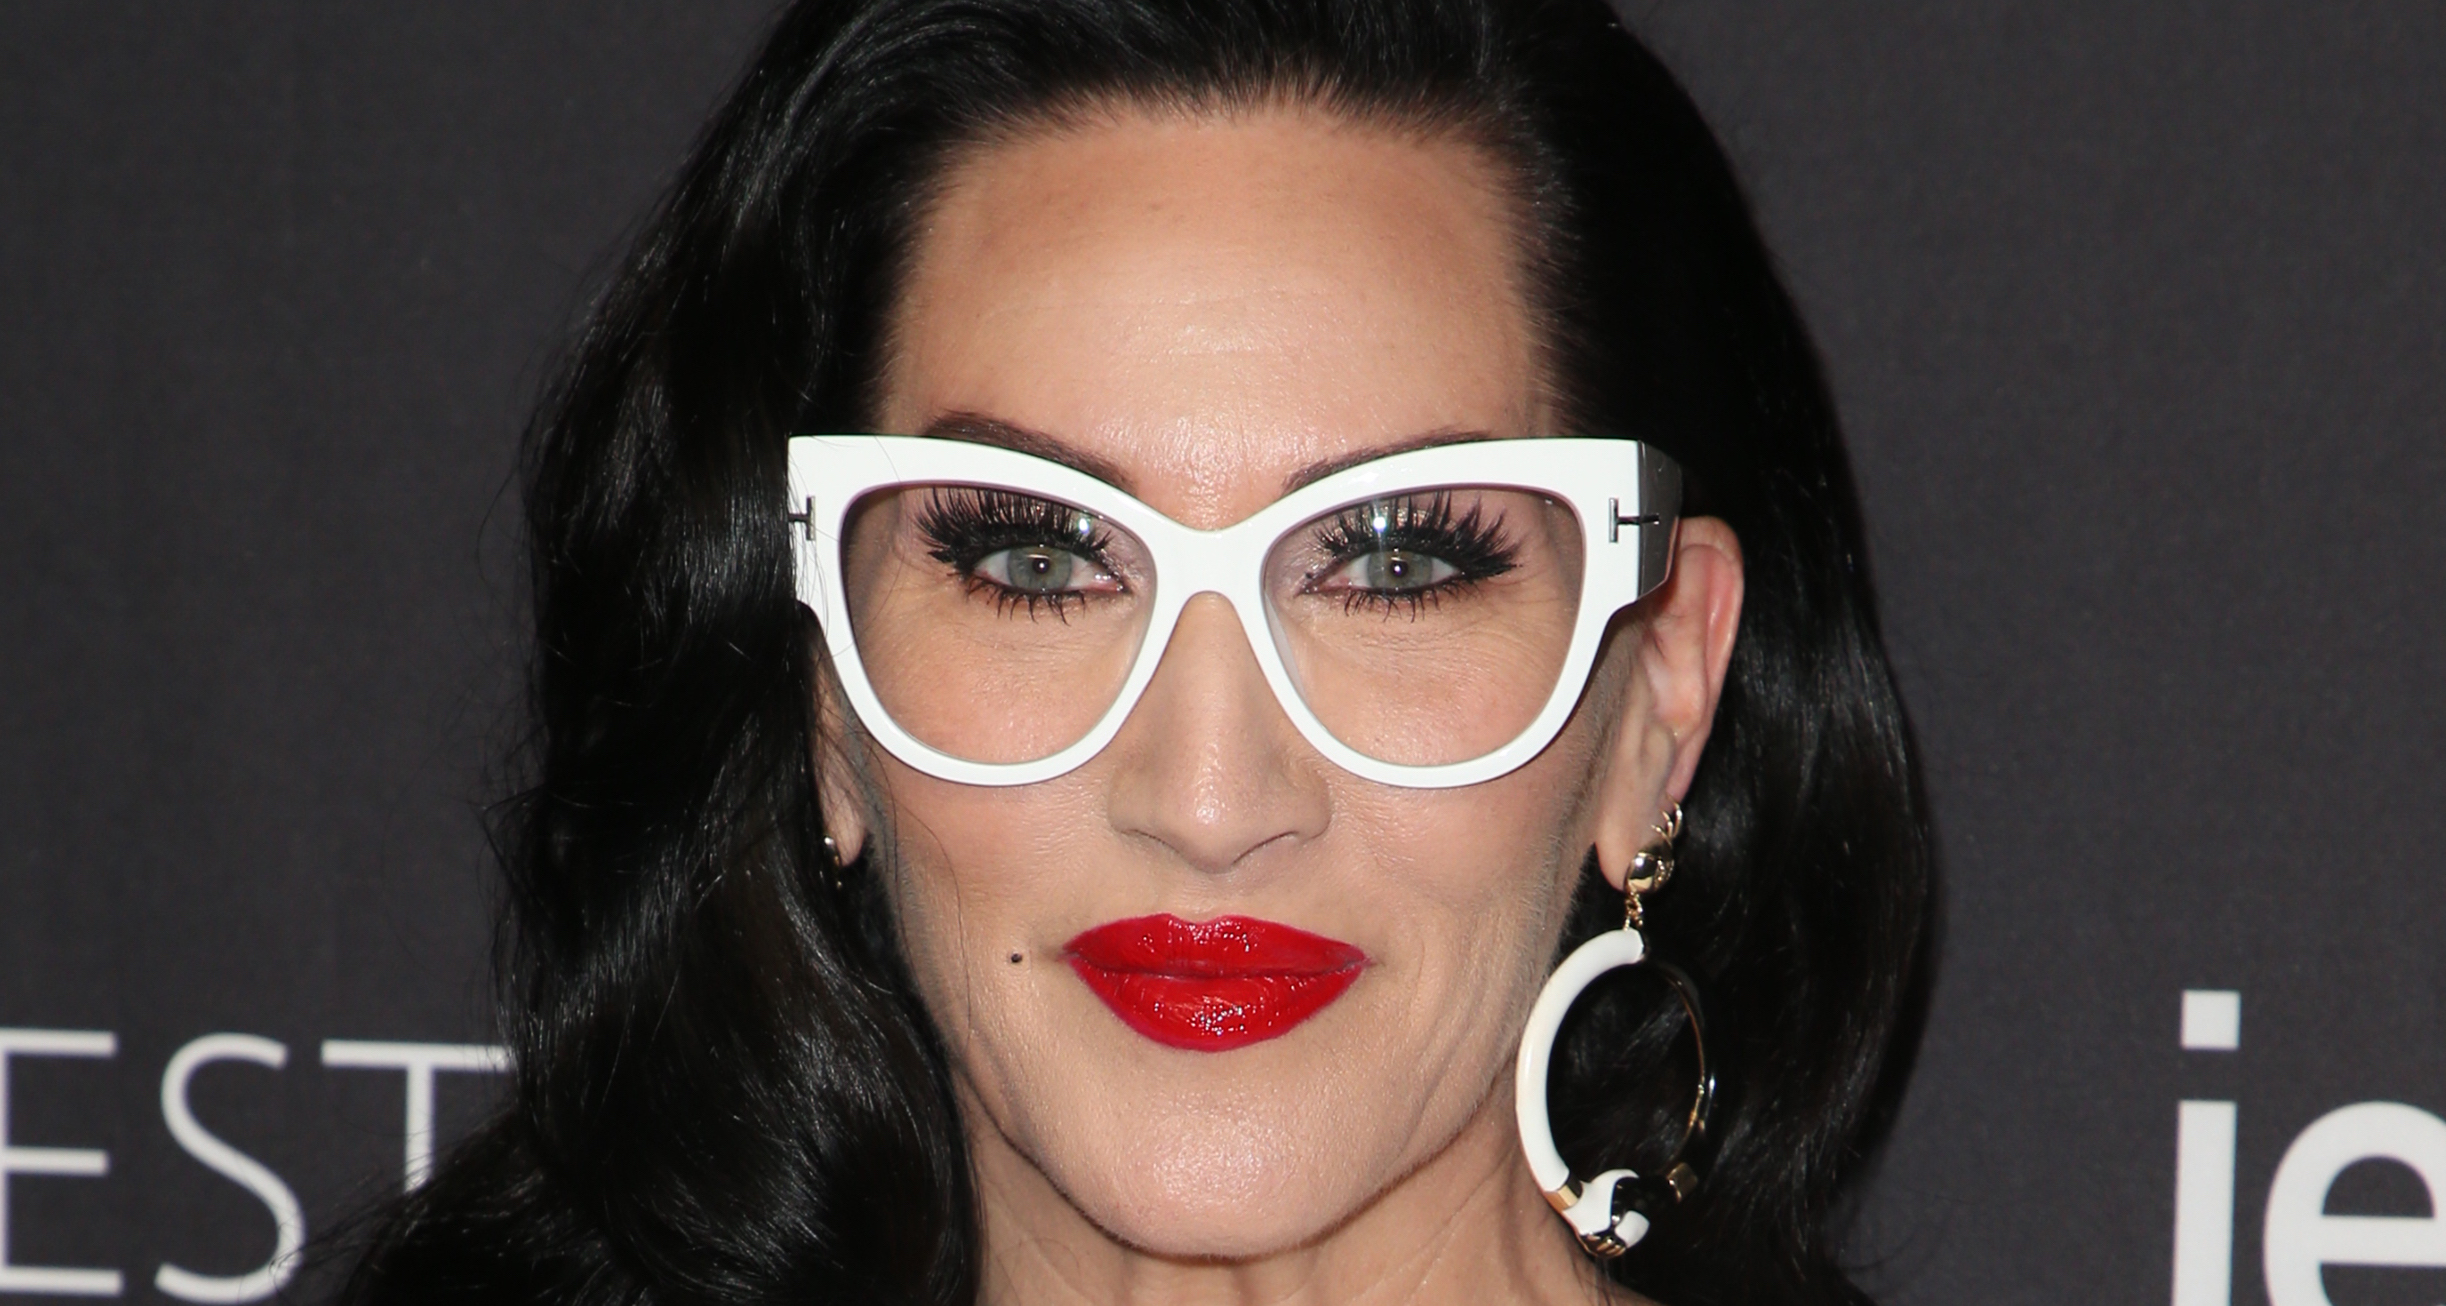 Strictly Come Dancing 2019: Michelle Visage misses glitzy London launch